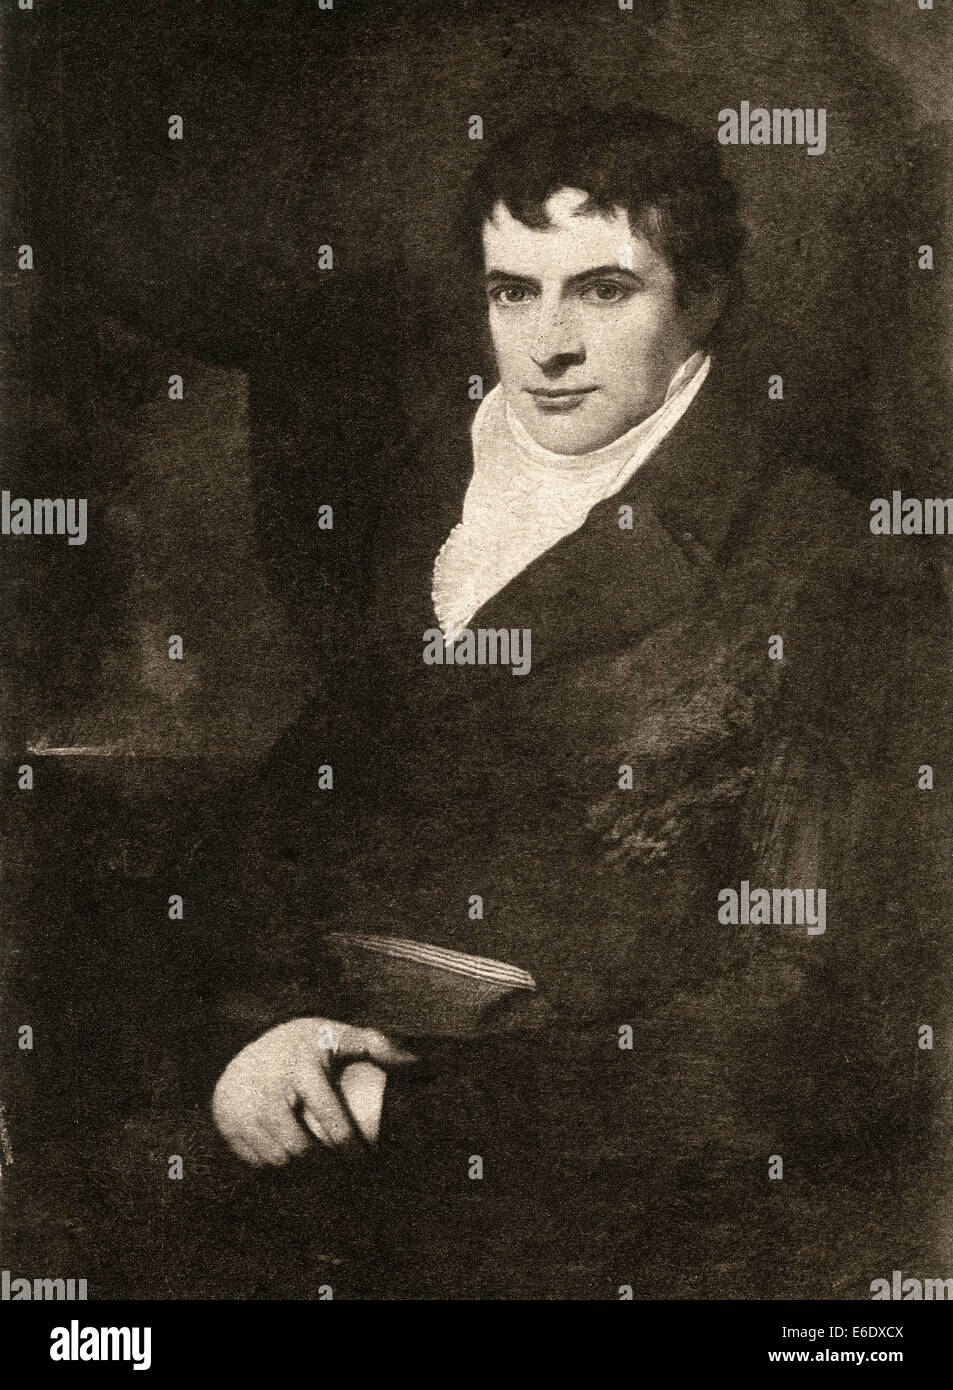 Worksheet Steamboat Inventor robert fulton 1765 1815 british american engineer and inventor who is widely credited with the development of steamboat